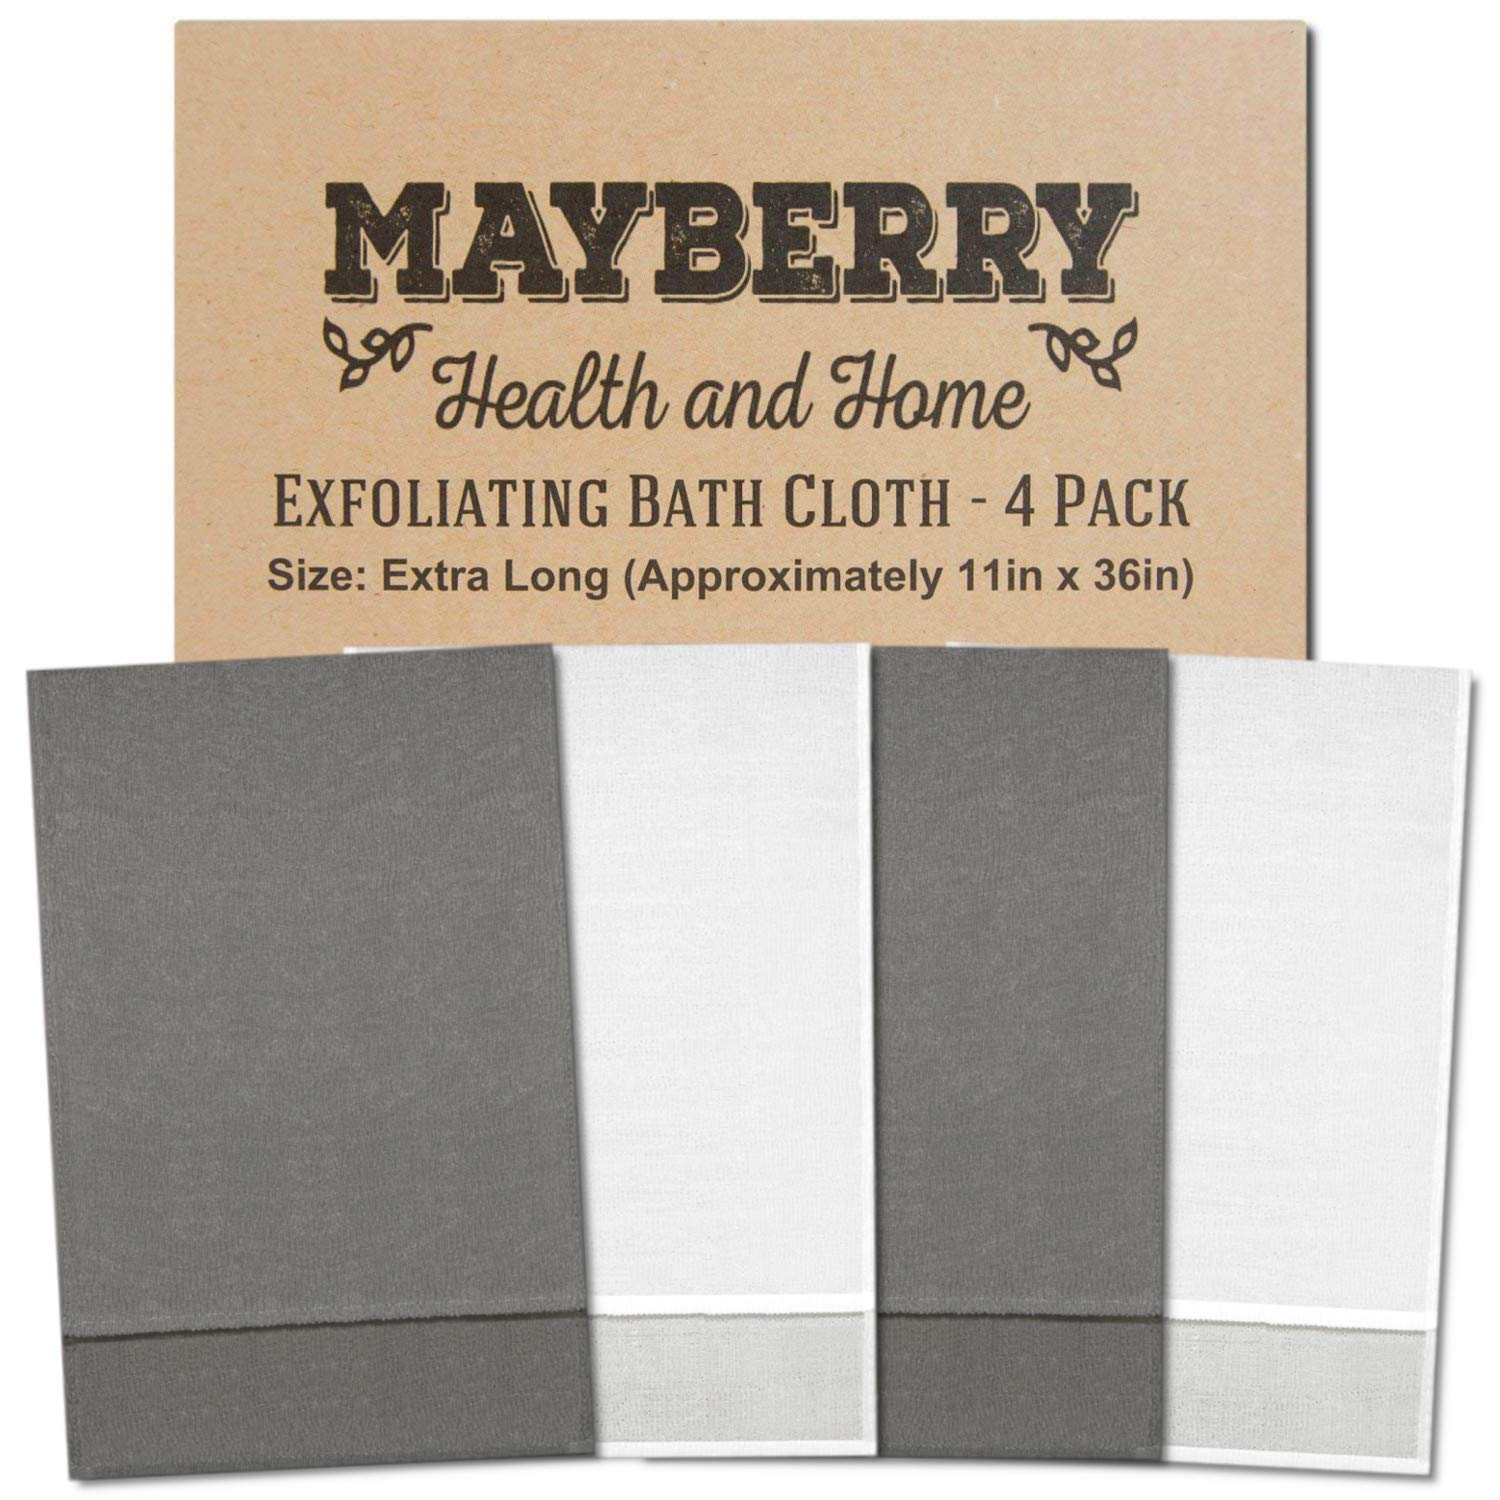 Extra Long (36 Inches) Exfoliating Bath Cloth/Towel (4 Pack) Nylon Bath Cloth/Towel, Stitching on All Sides for Added Durability (Gray and White)